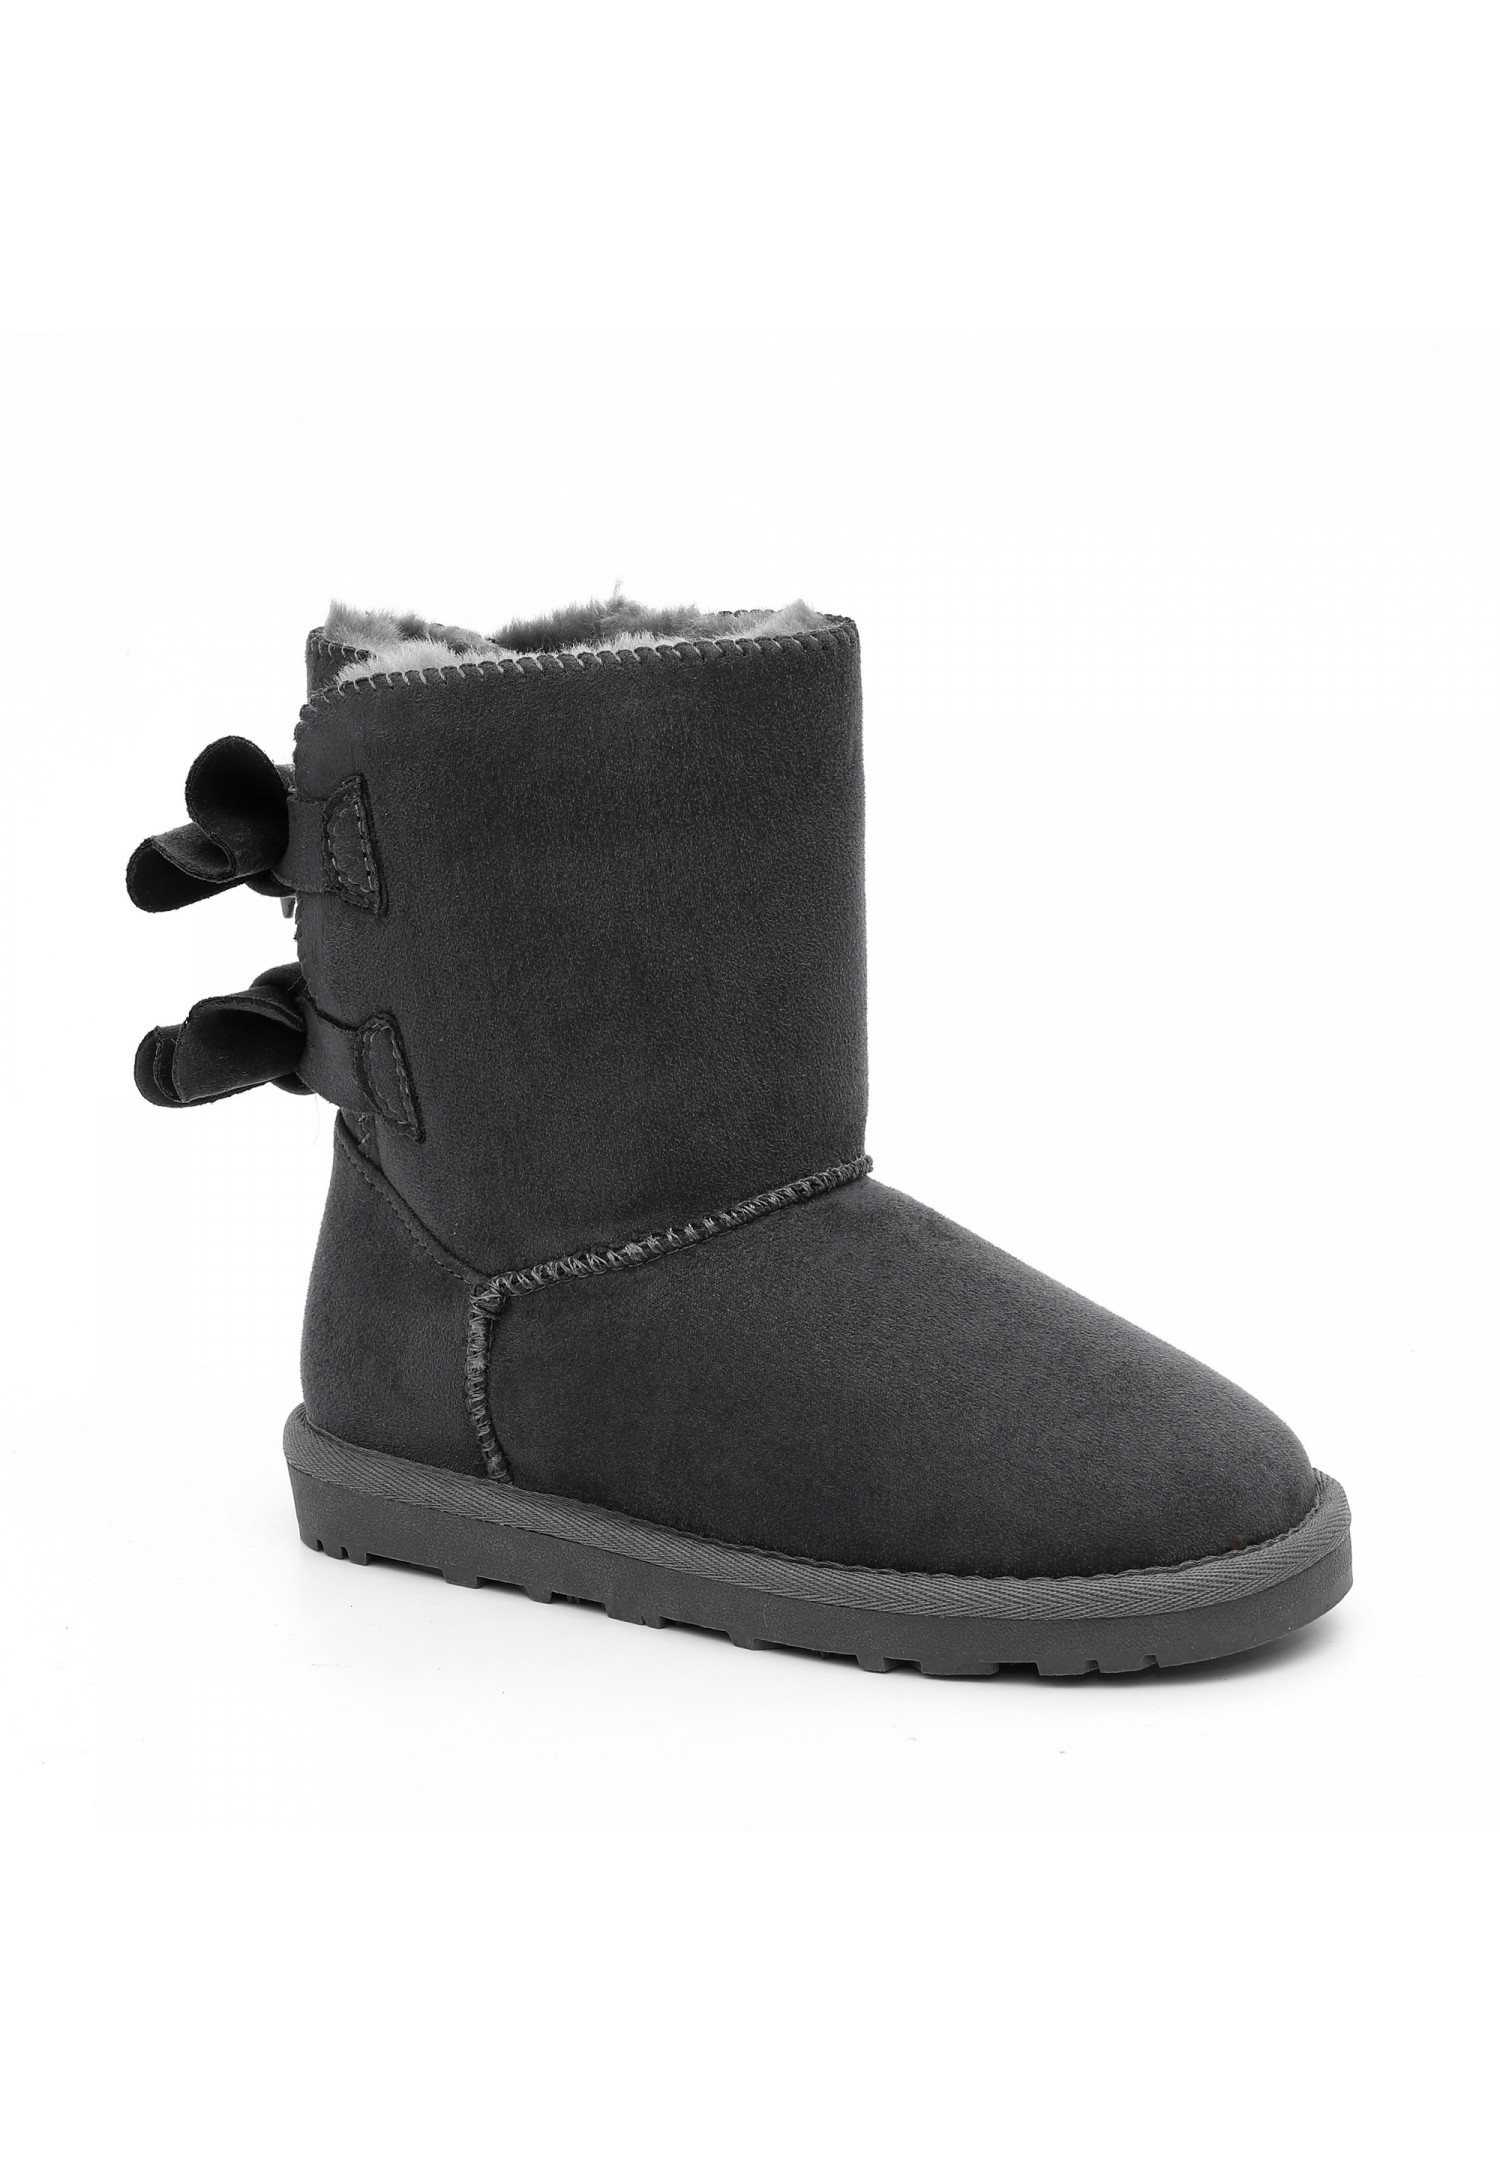 Bottines Enfants Bowine